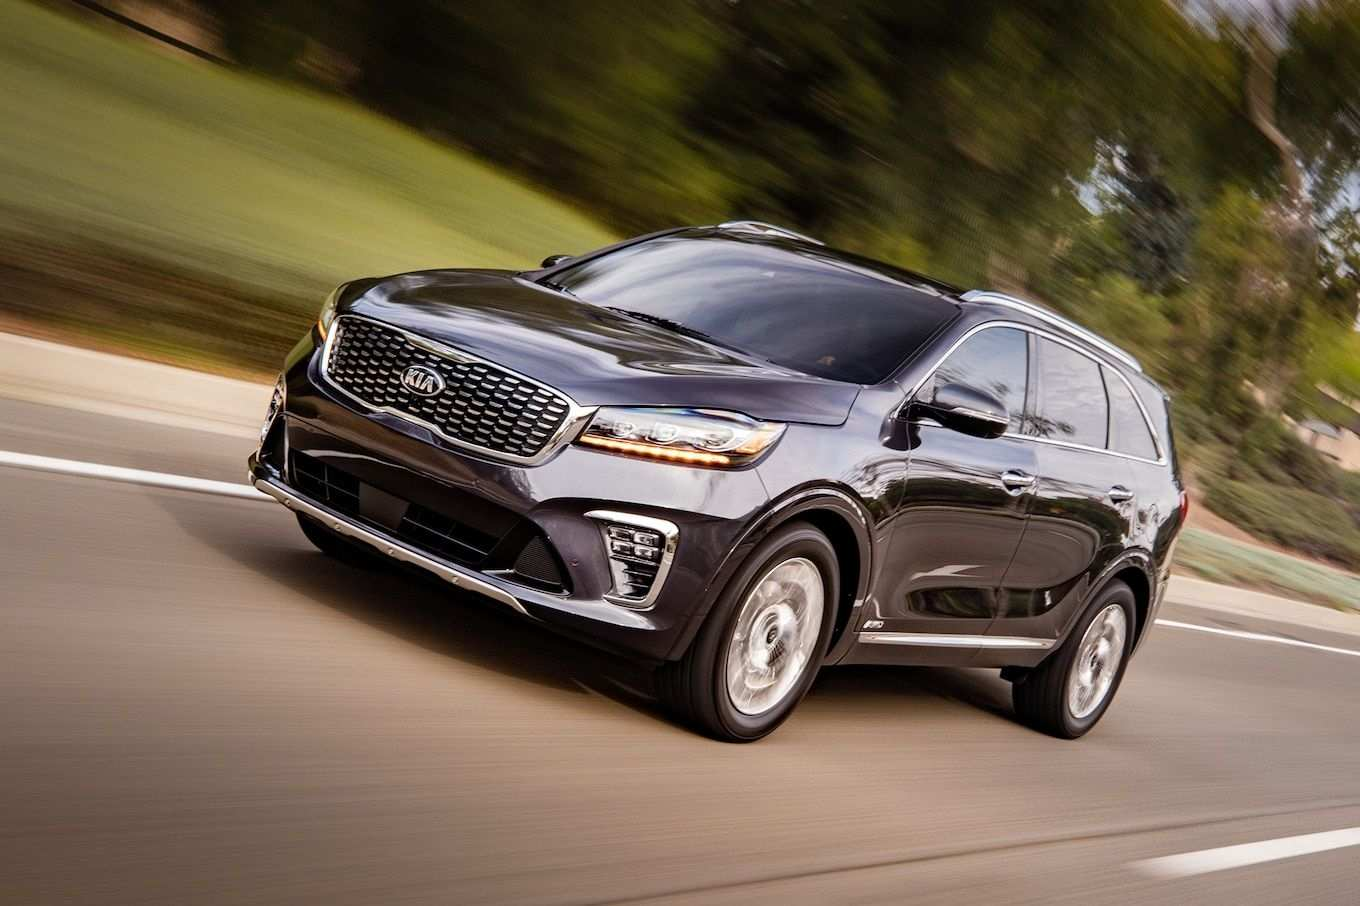 27 Great Kia Classic 2019 Dates New Review for Kia Classic 2019 Dates